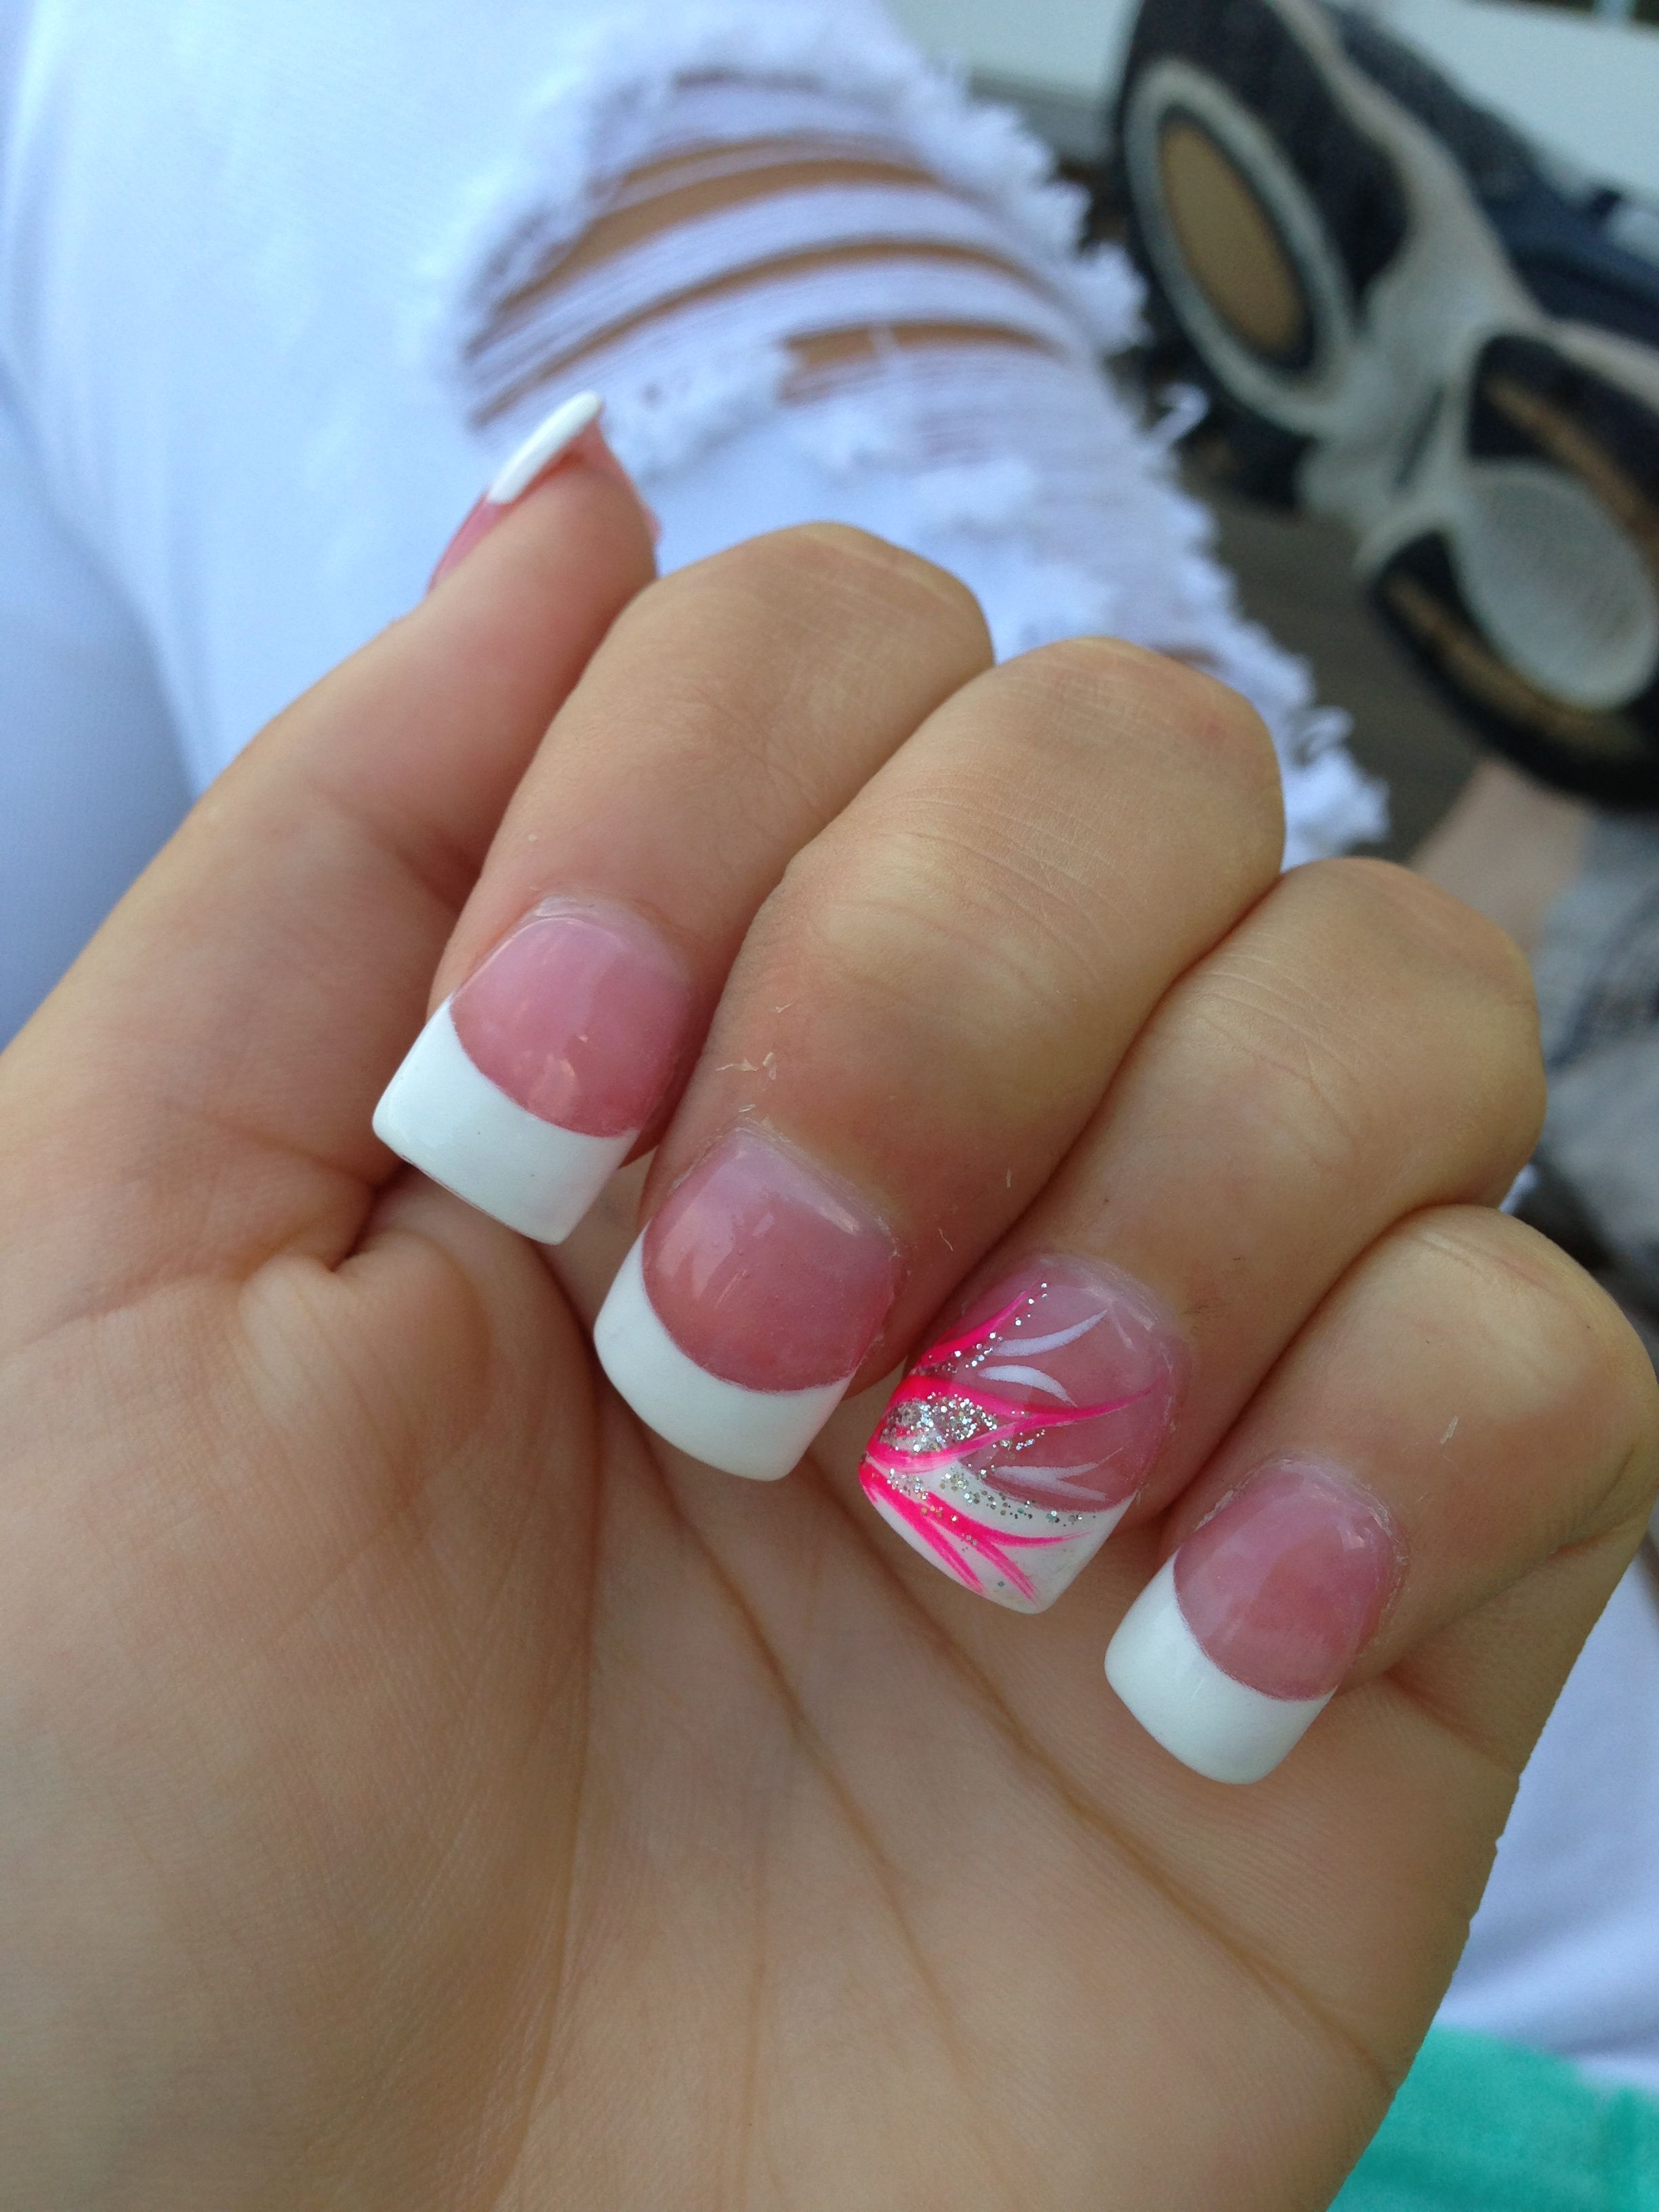 New French nails | Nails! | Pinterest | Success, French nails and ...